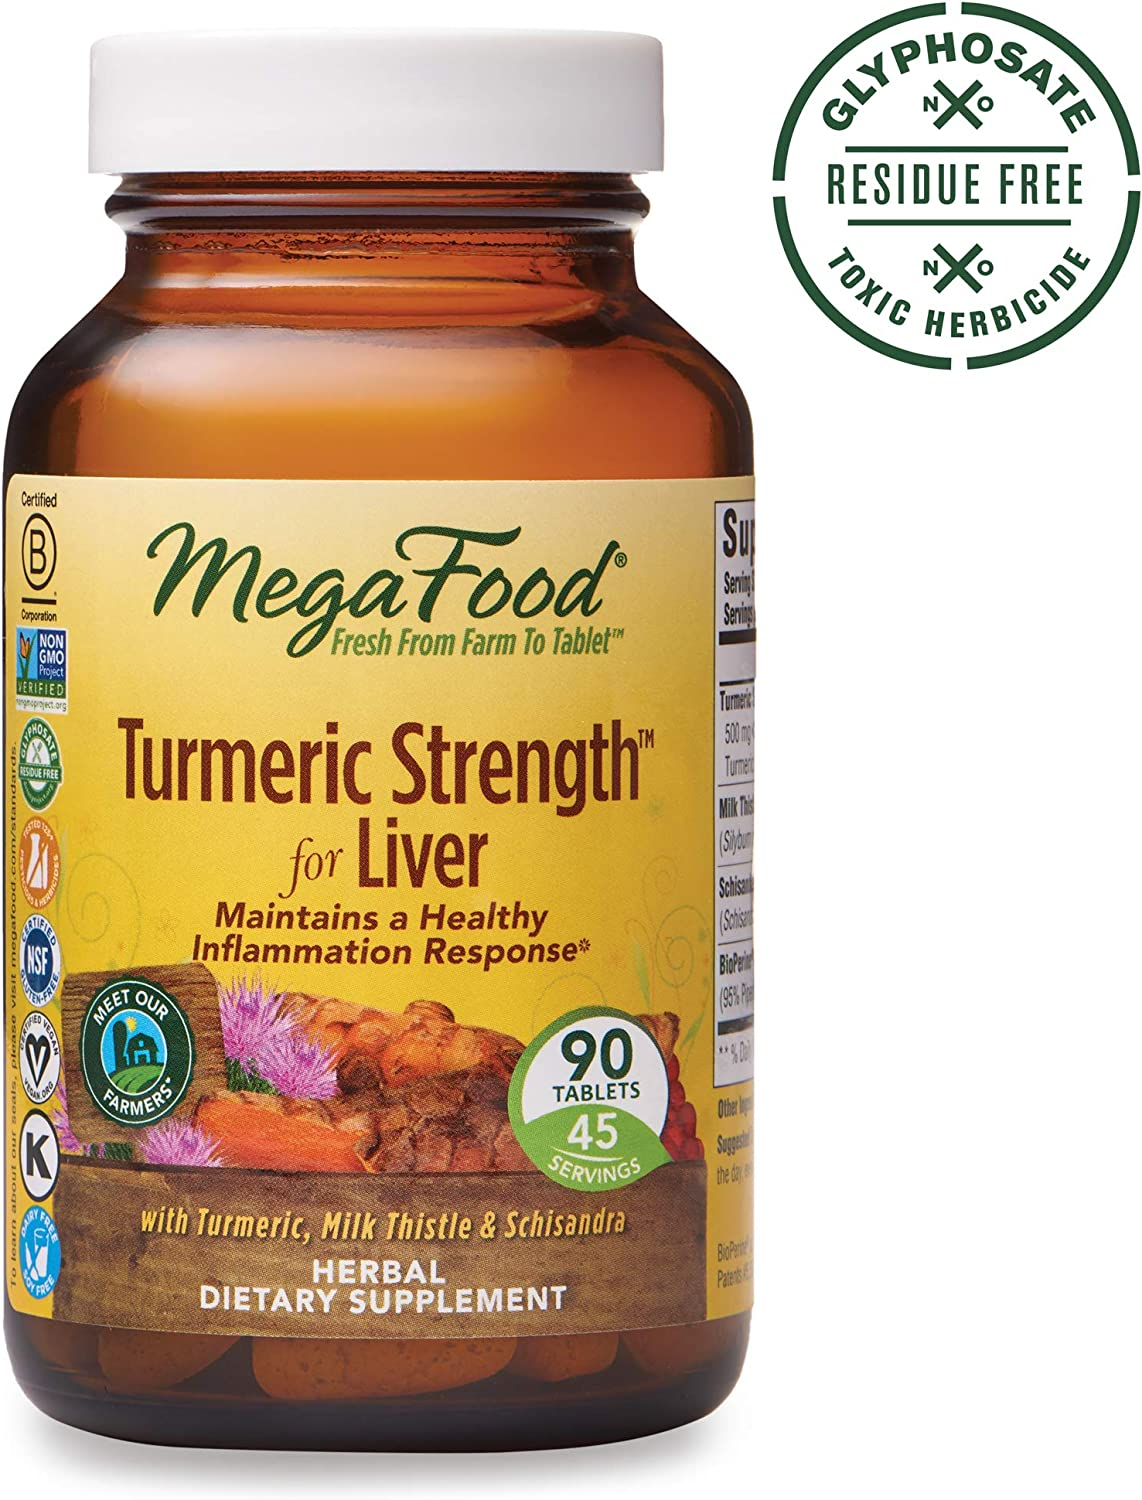 MegaFood, Turmeric Strength for Liver, Maintains a Healthy Inflammation Response, Vitamin and Herbal Dietary Supplement, Gluten Free, Vegan, 90 Tablets 45 Servings FFP